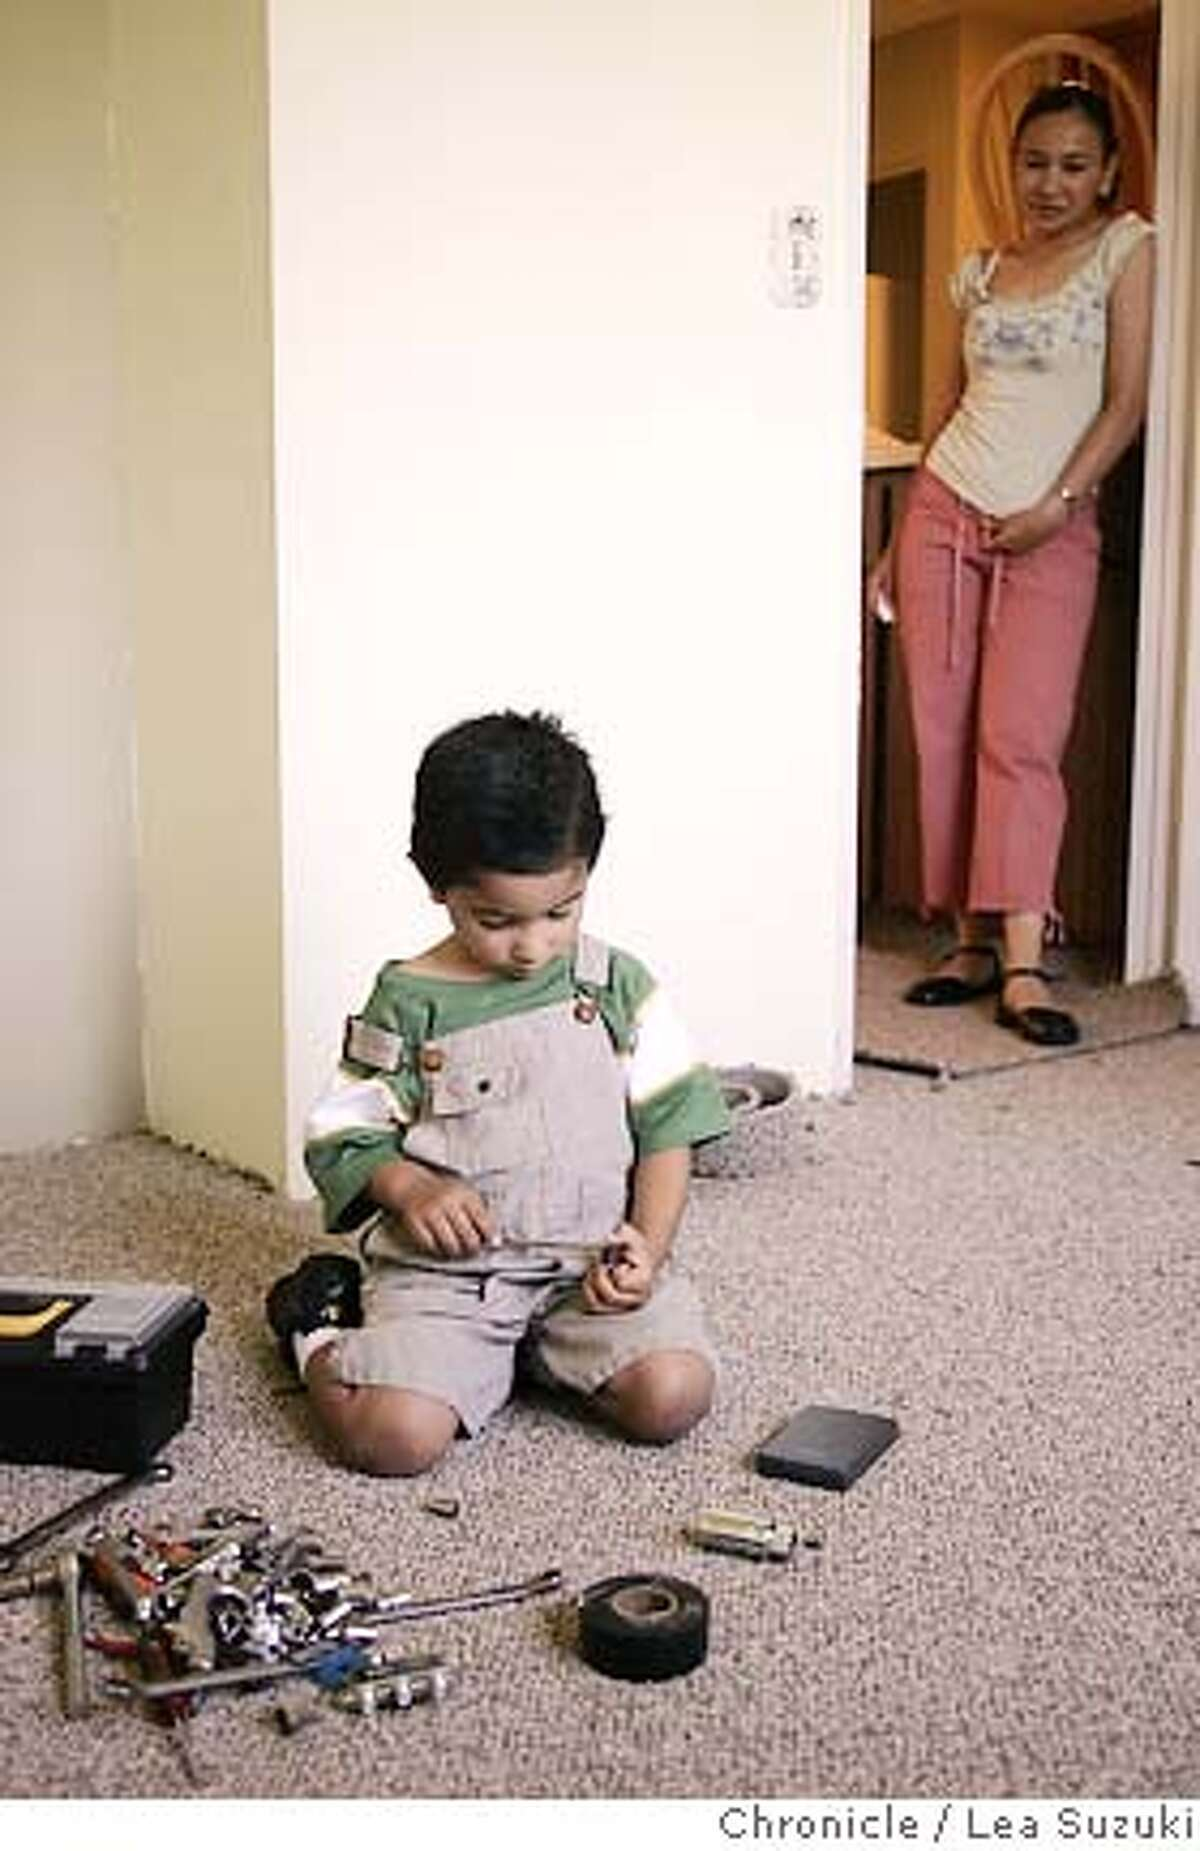 immigrant_mortgage_007_ls.JPG Alexis, 3, plays with tools from his father's toolbox as his mother, Marisol, looks upon him at 312 Stonegate Circle in San Jose on Sunday June 4, 2006. Photo by LEA SUZUKI/The San Francisco Chronicle Photo taken on 6/4/06, in San Jose, CA, USA *cq